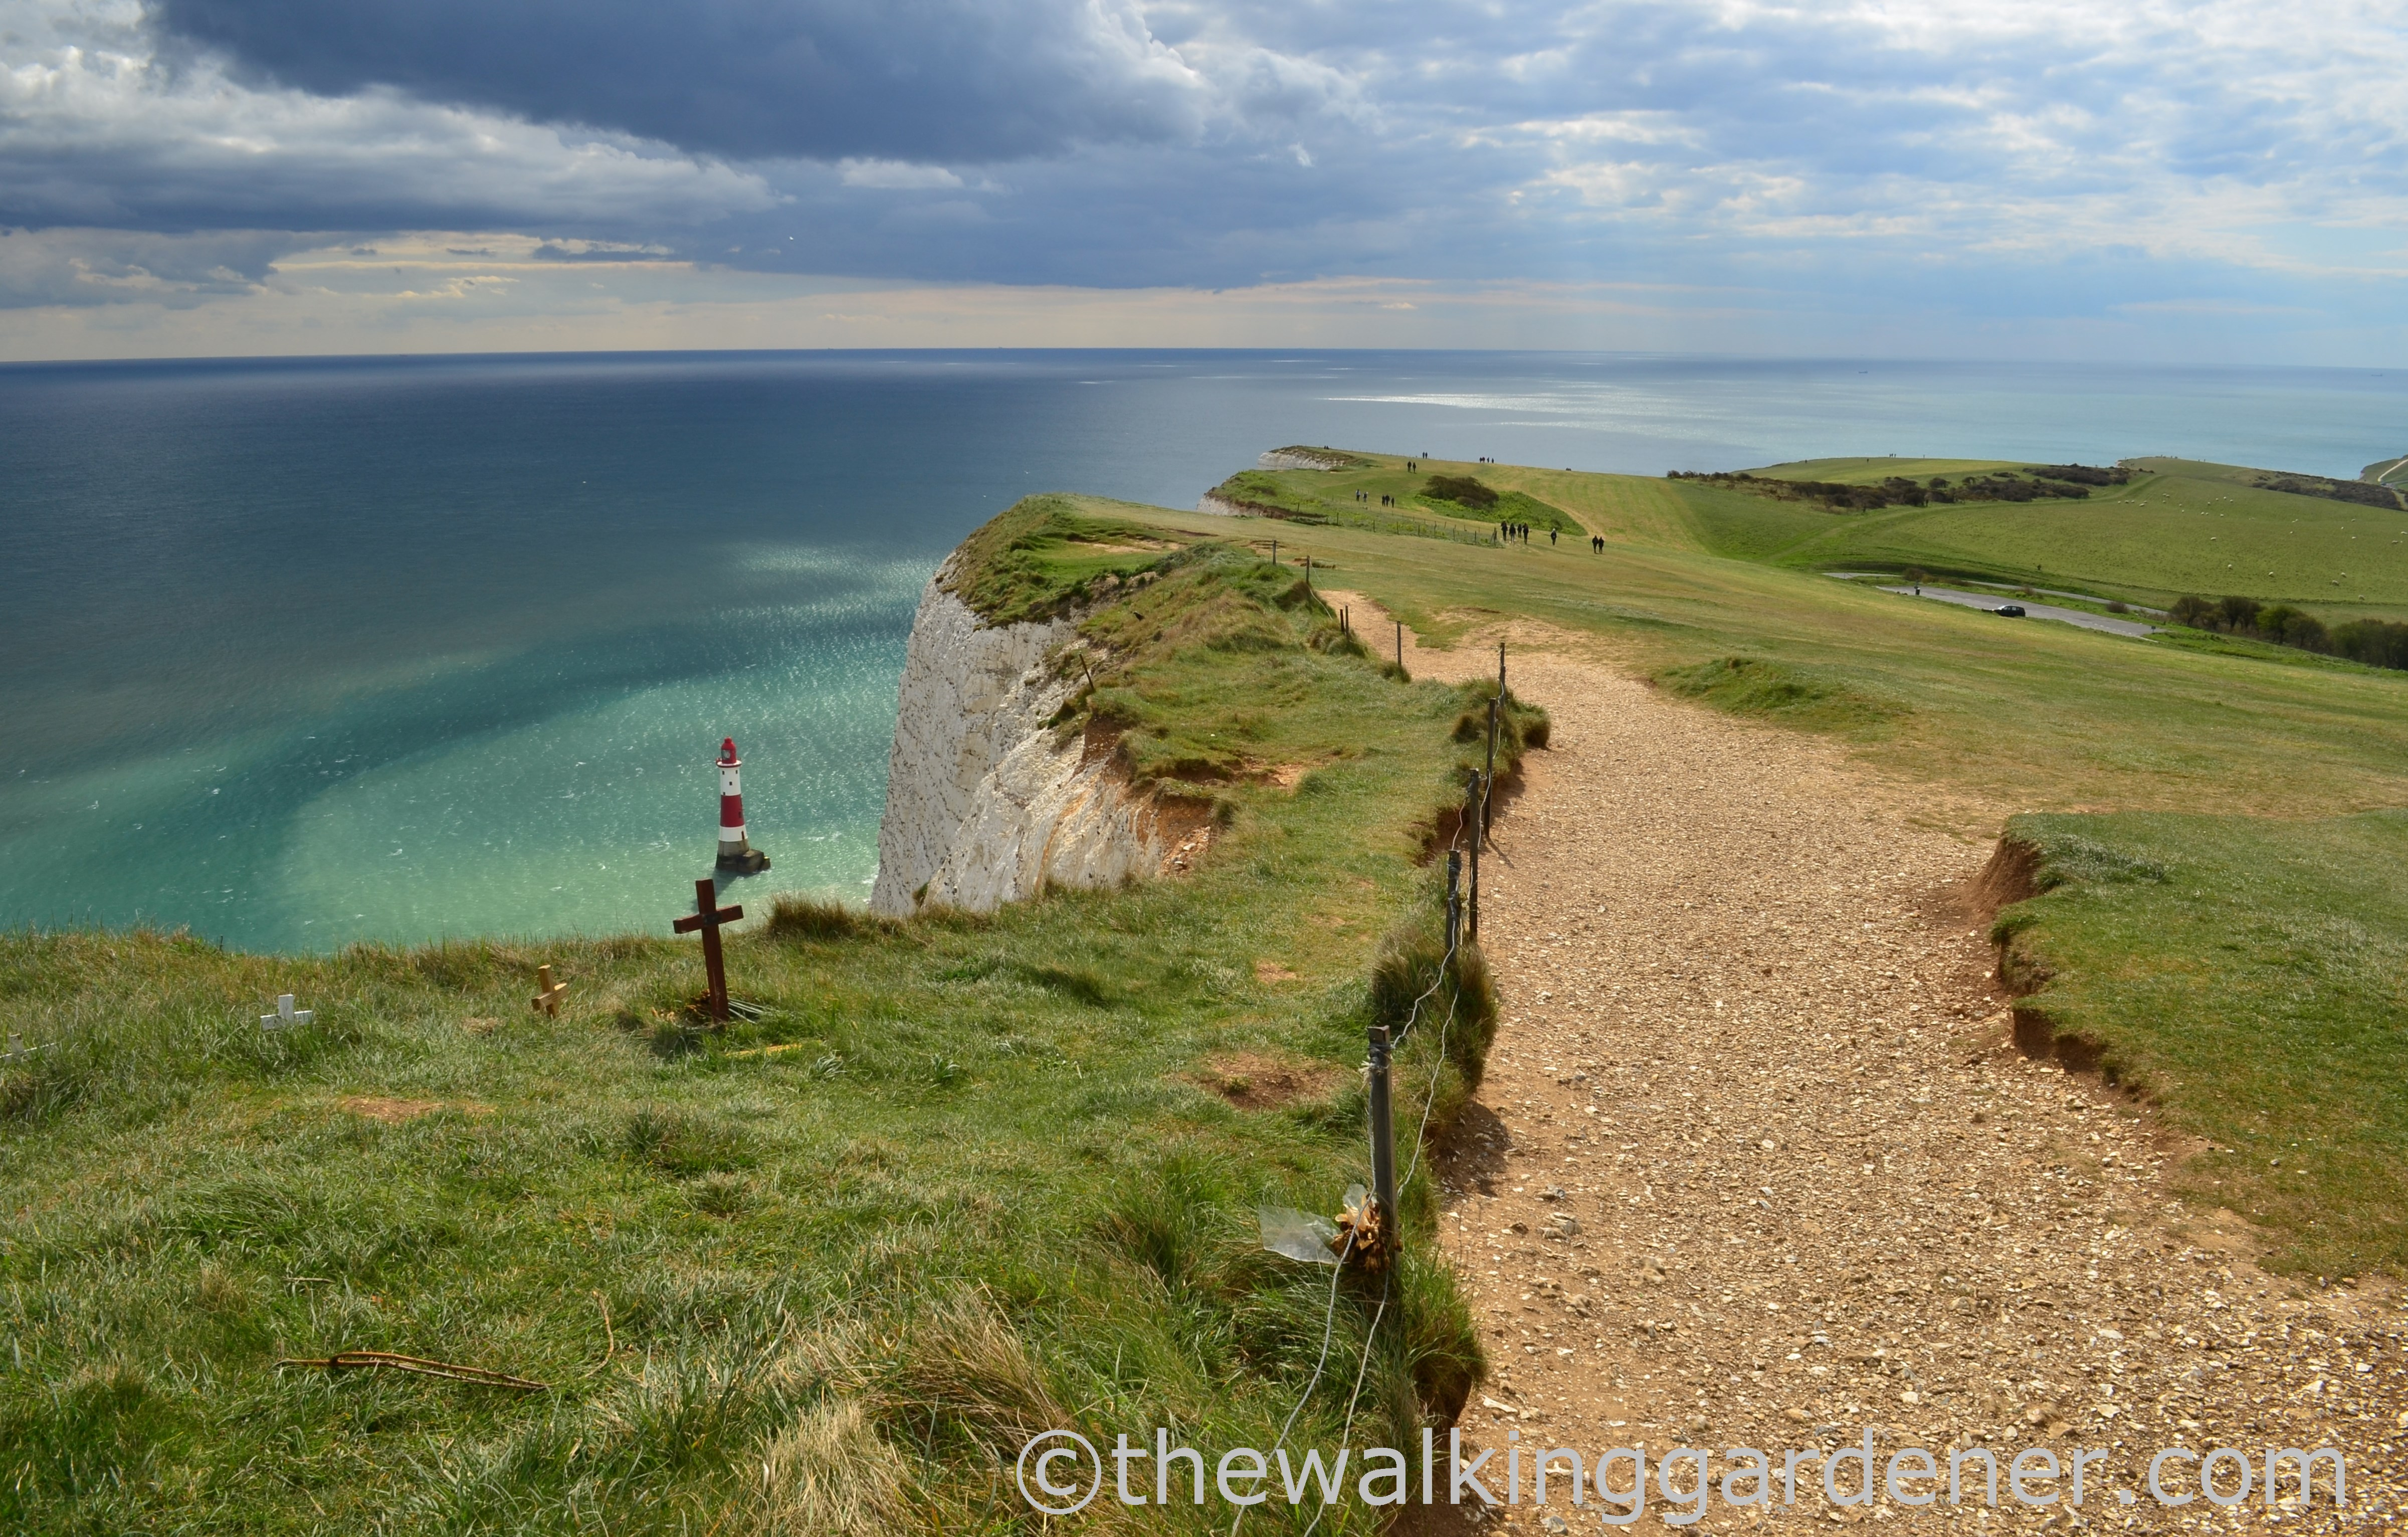 The South Downs Way: Day 6 – Southease to Eastbourne